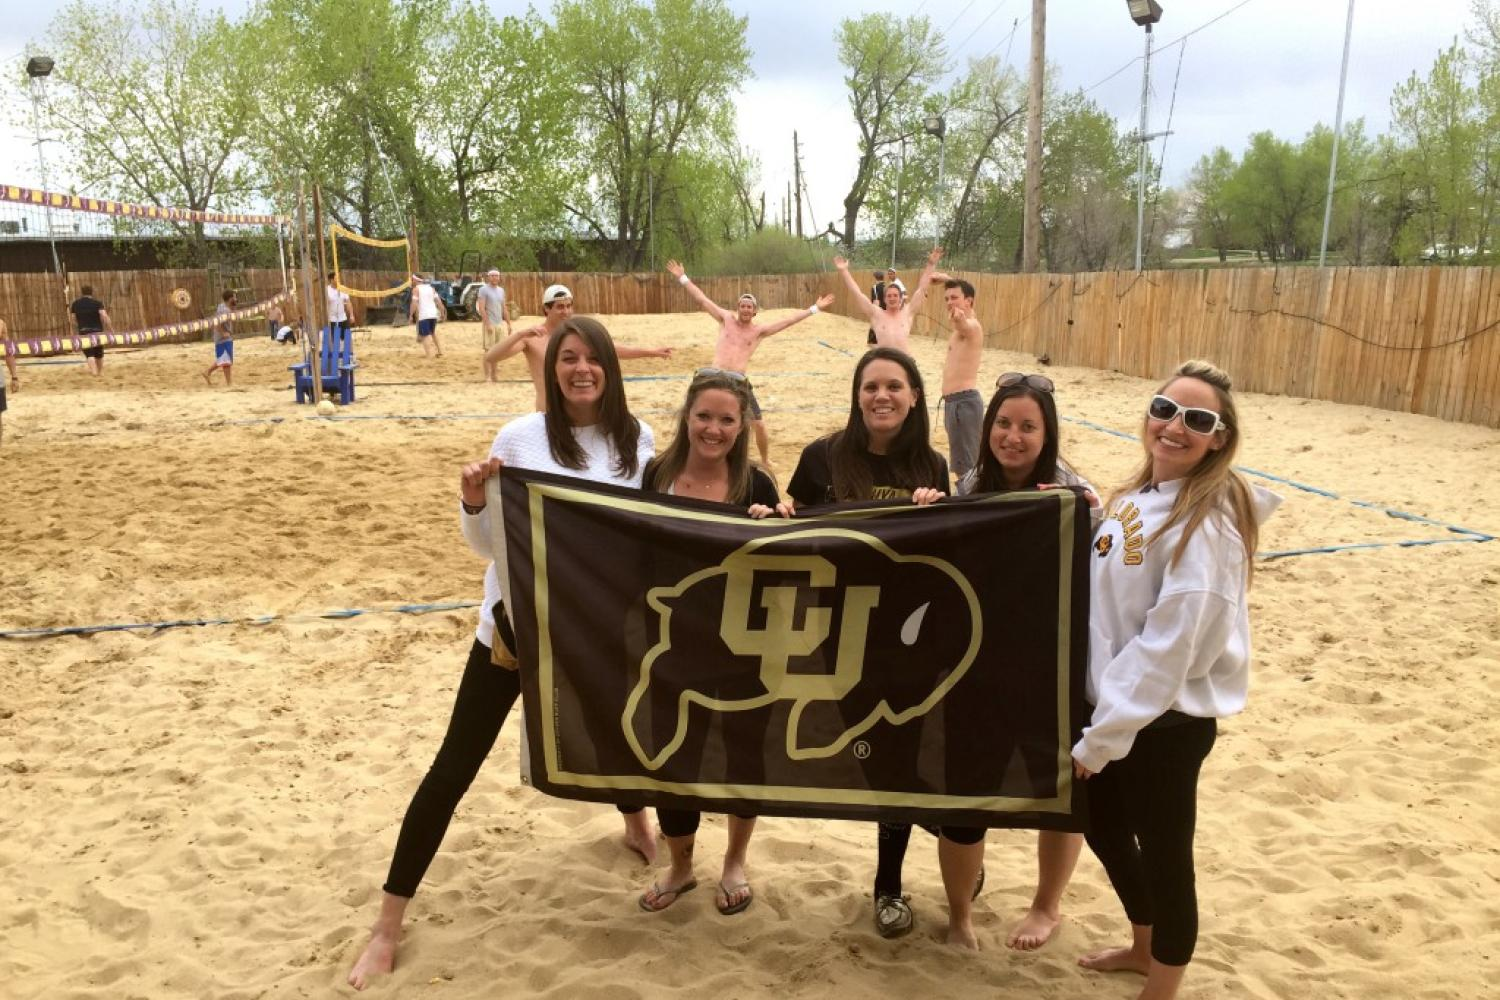 CU Boulder Young Alumni at volleyball game